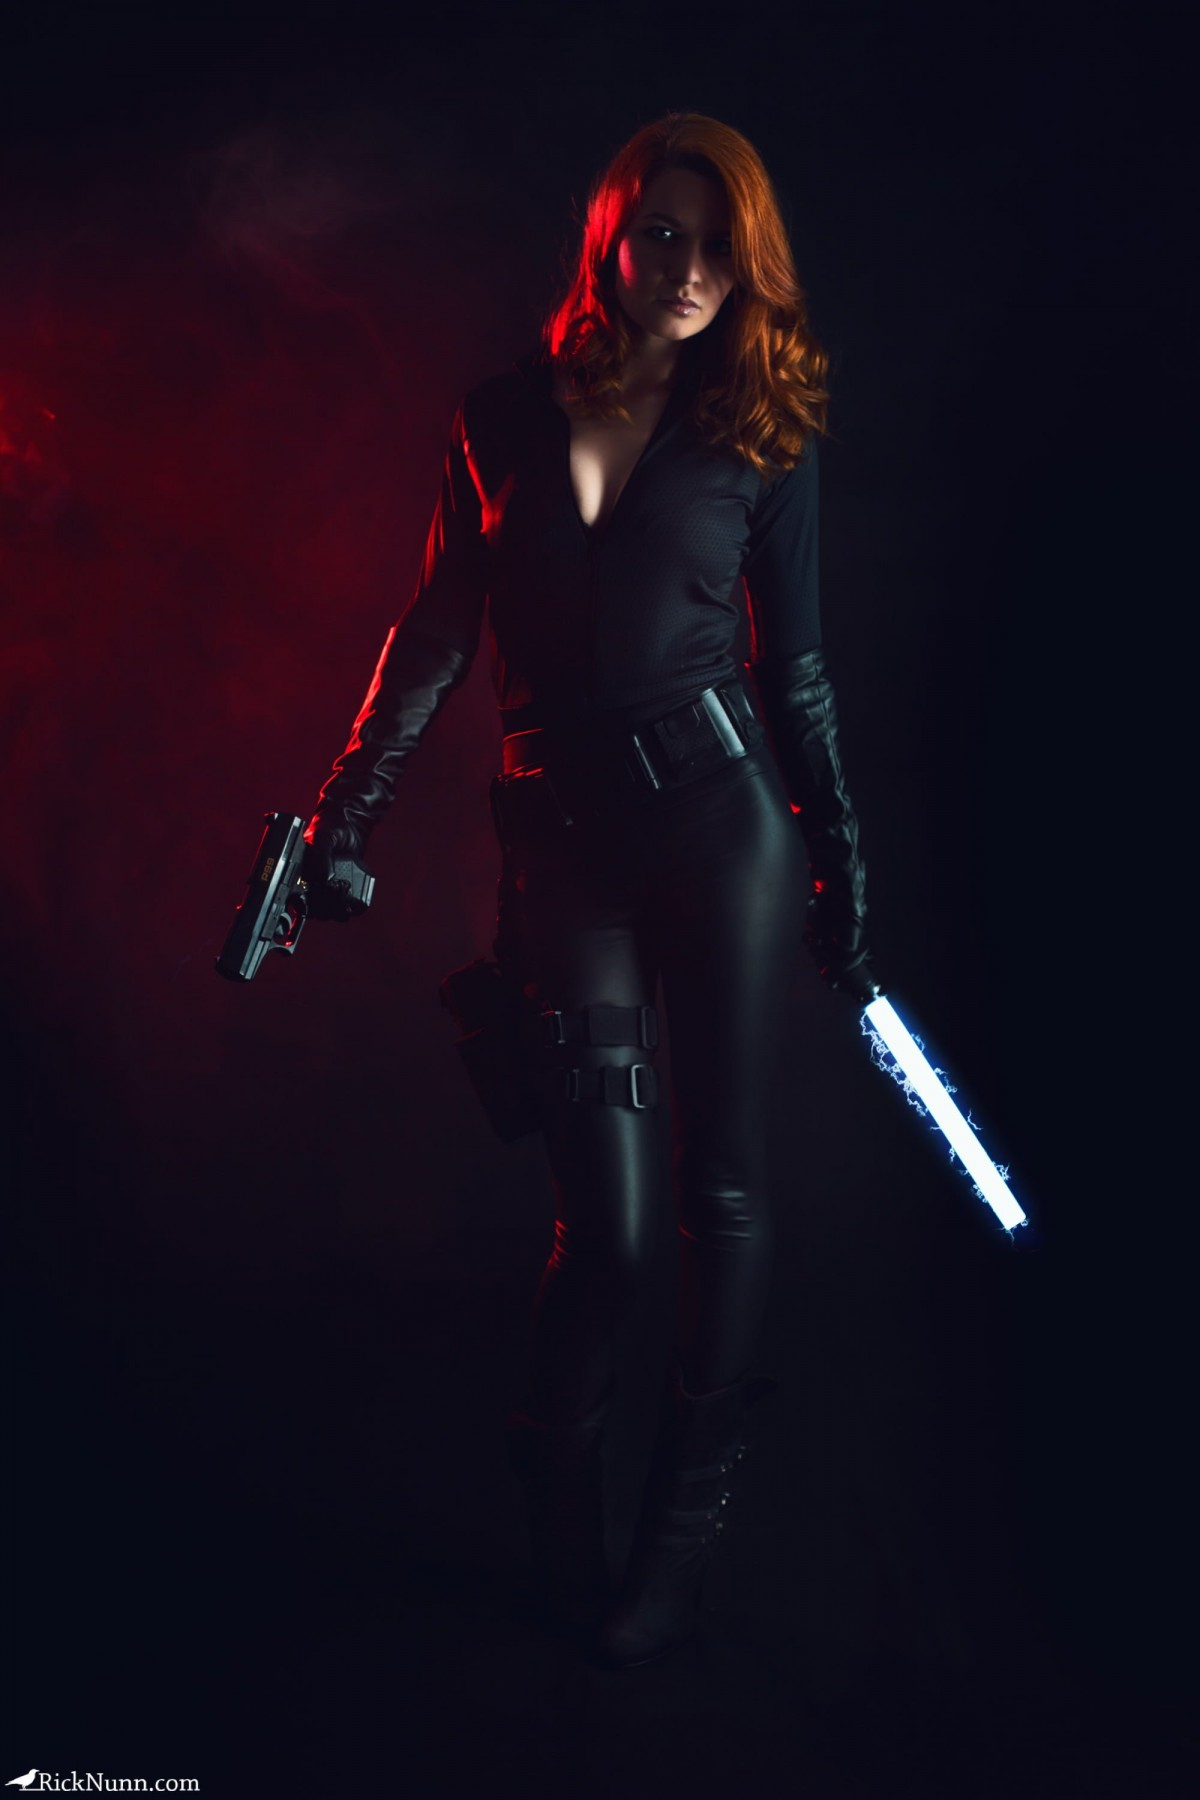 Black Widow - Strobist Portrait of Spadge as Black Widow with Gun and Glowing Baton Photographed by Rick Nunn